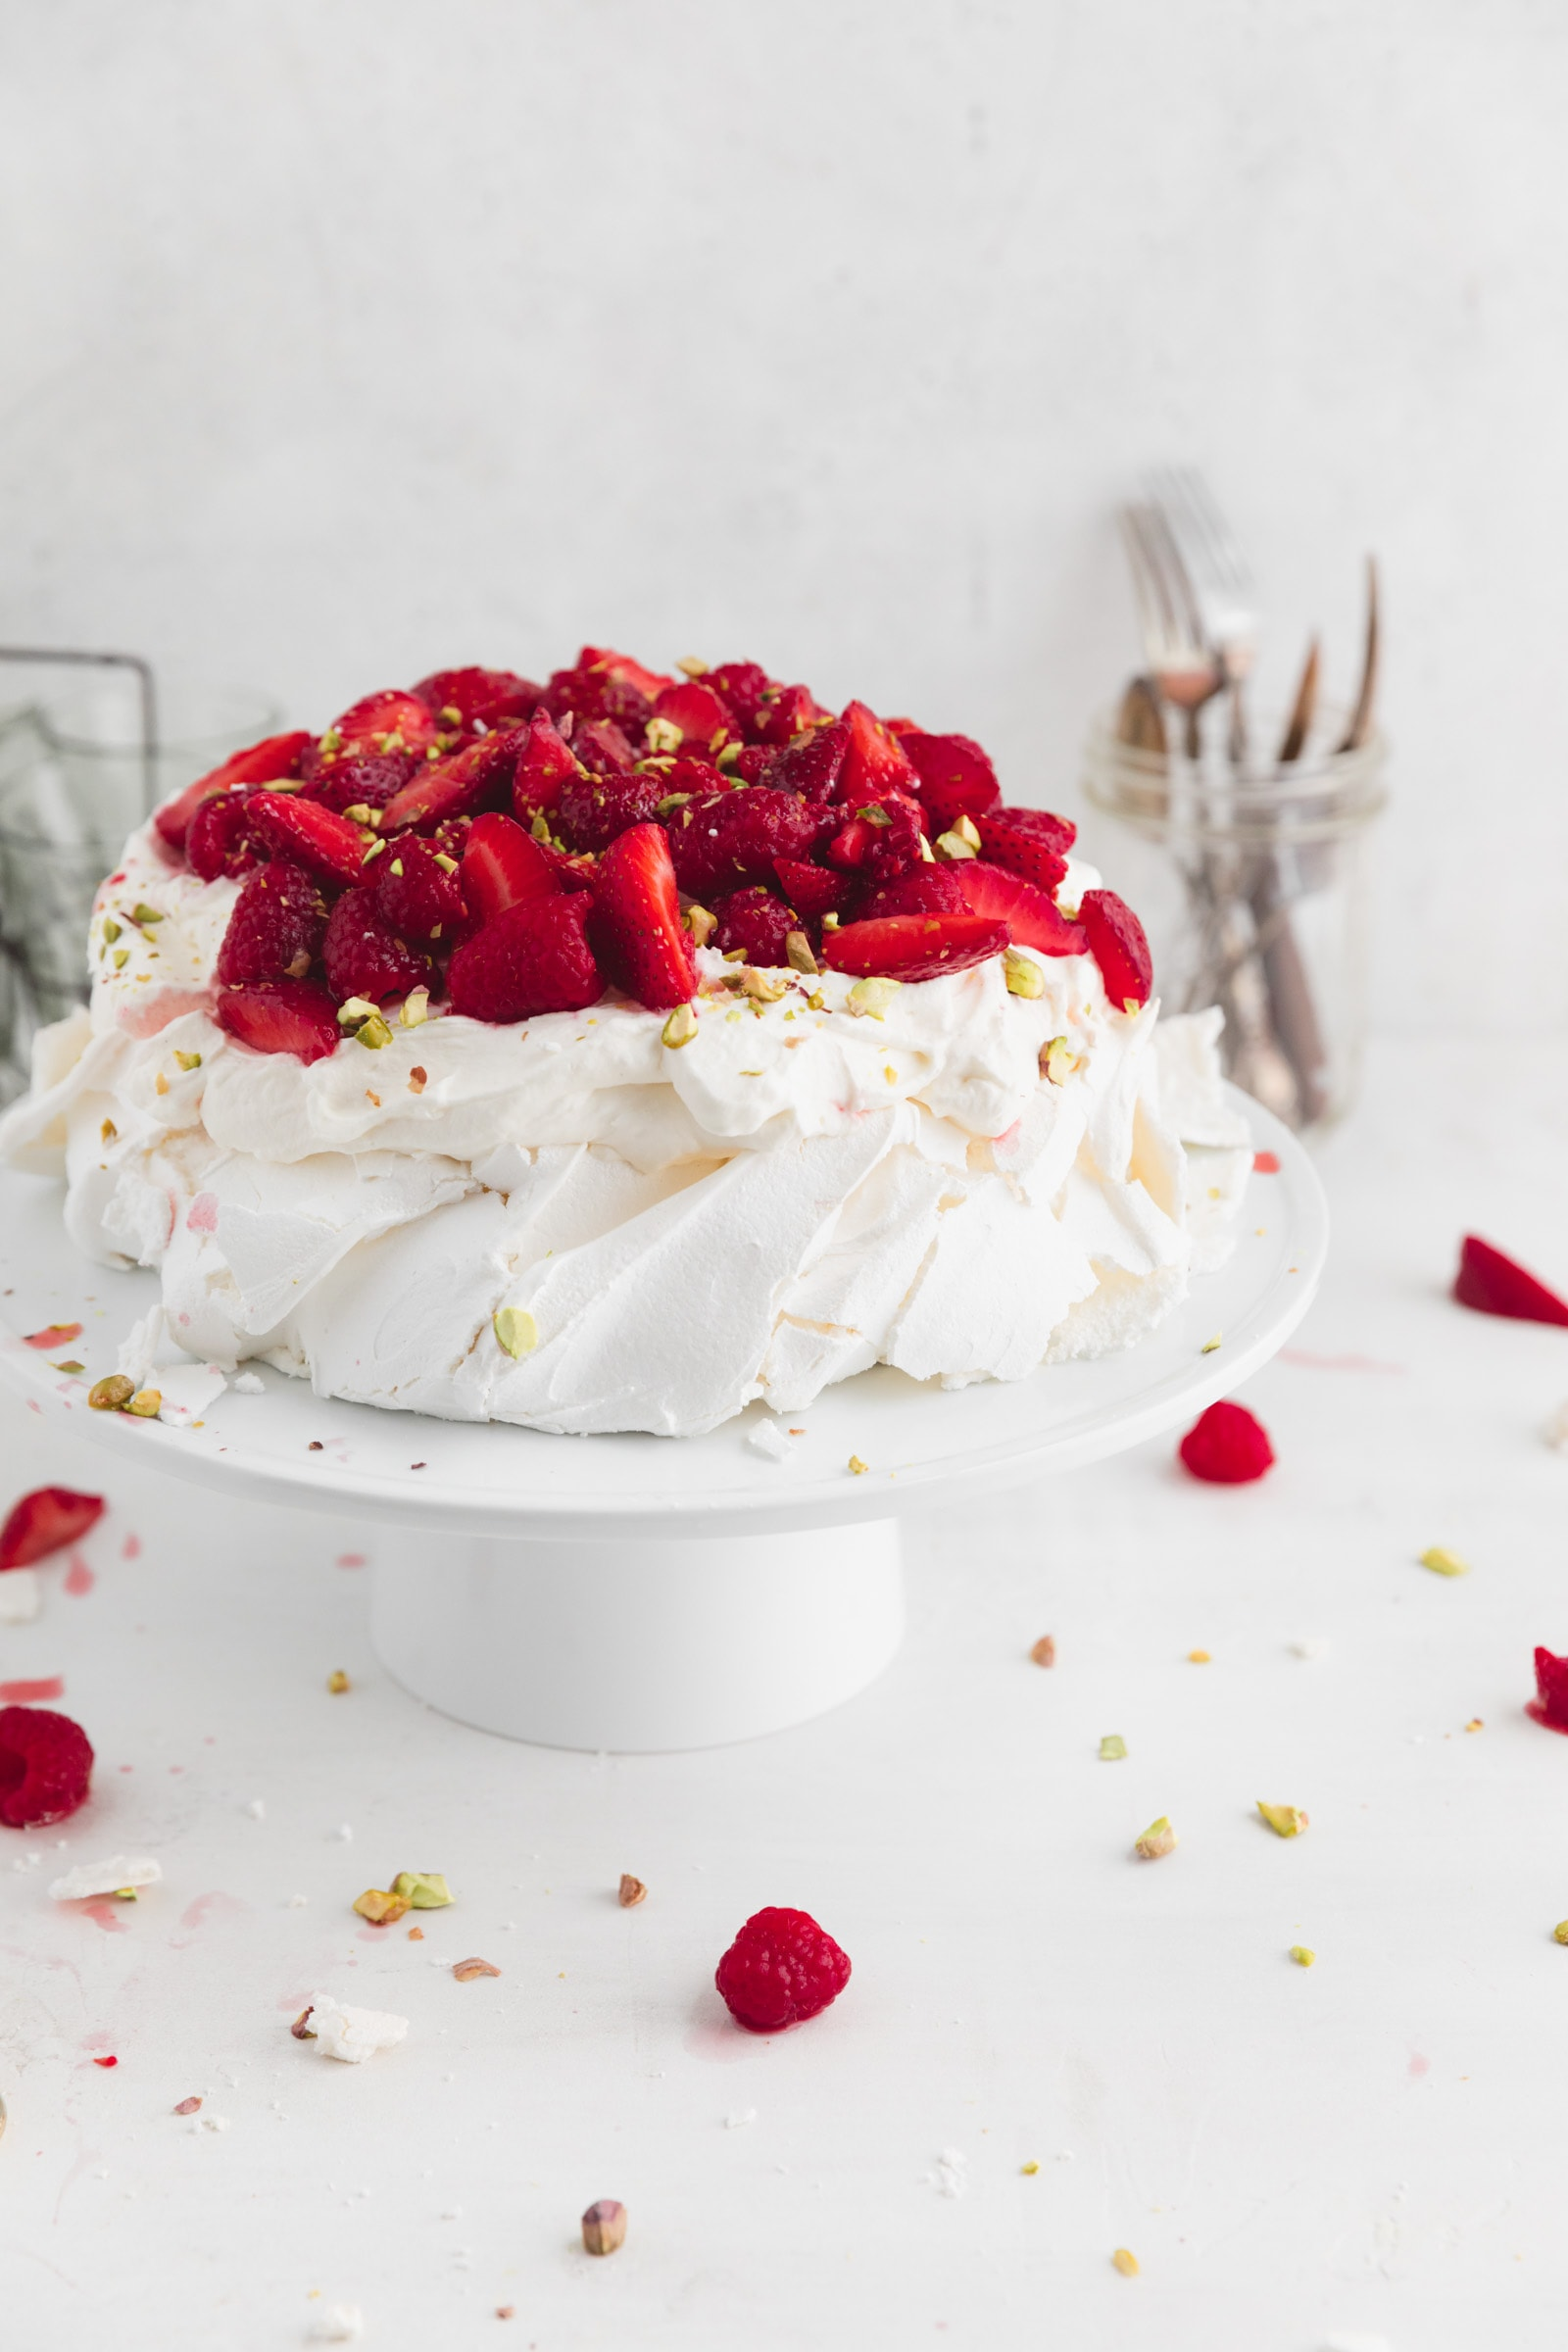 easy pavlova with berries and whipped cream